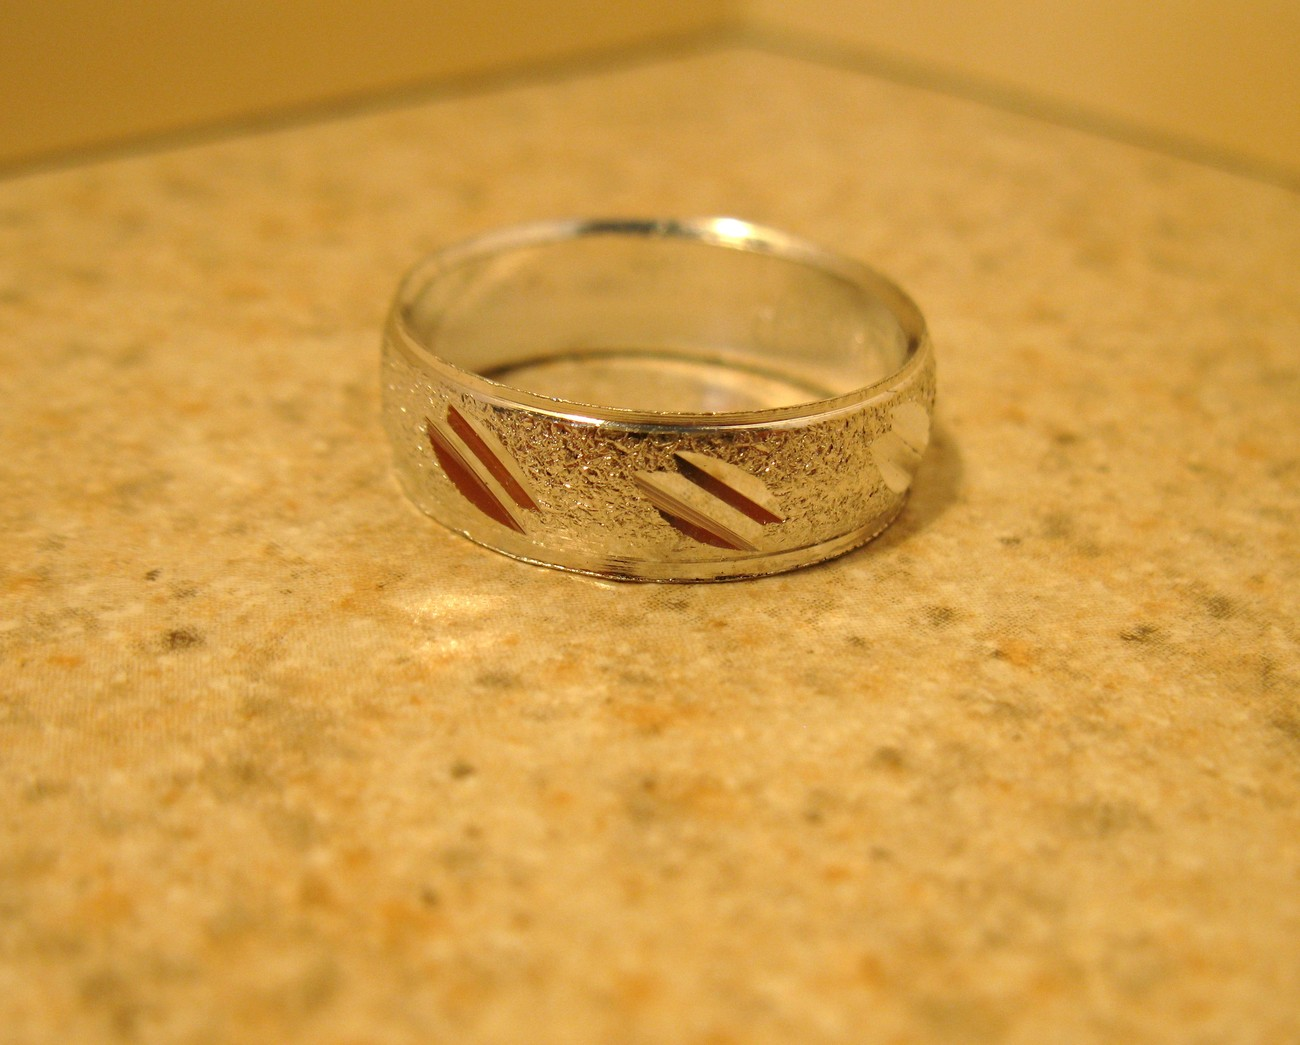 RING MEN WOMEN UNISEX SILVER PLATED BAND SIZE 7.5 #982